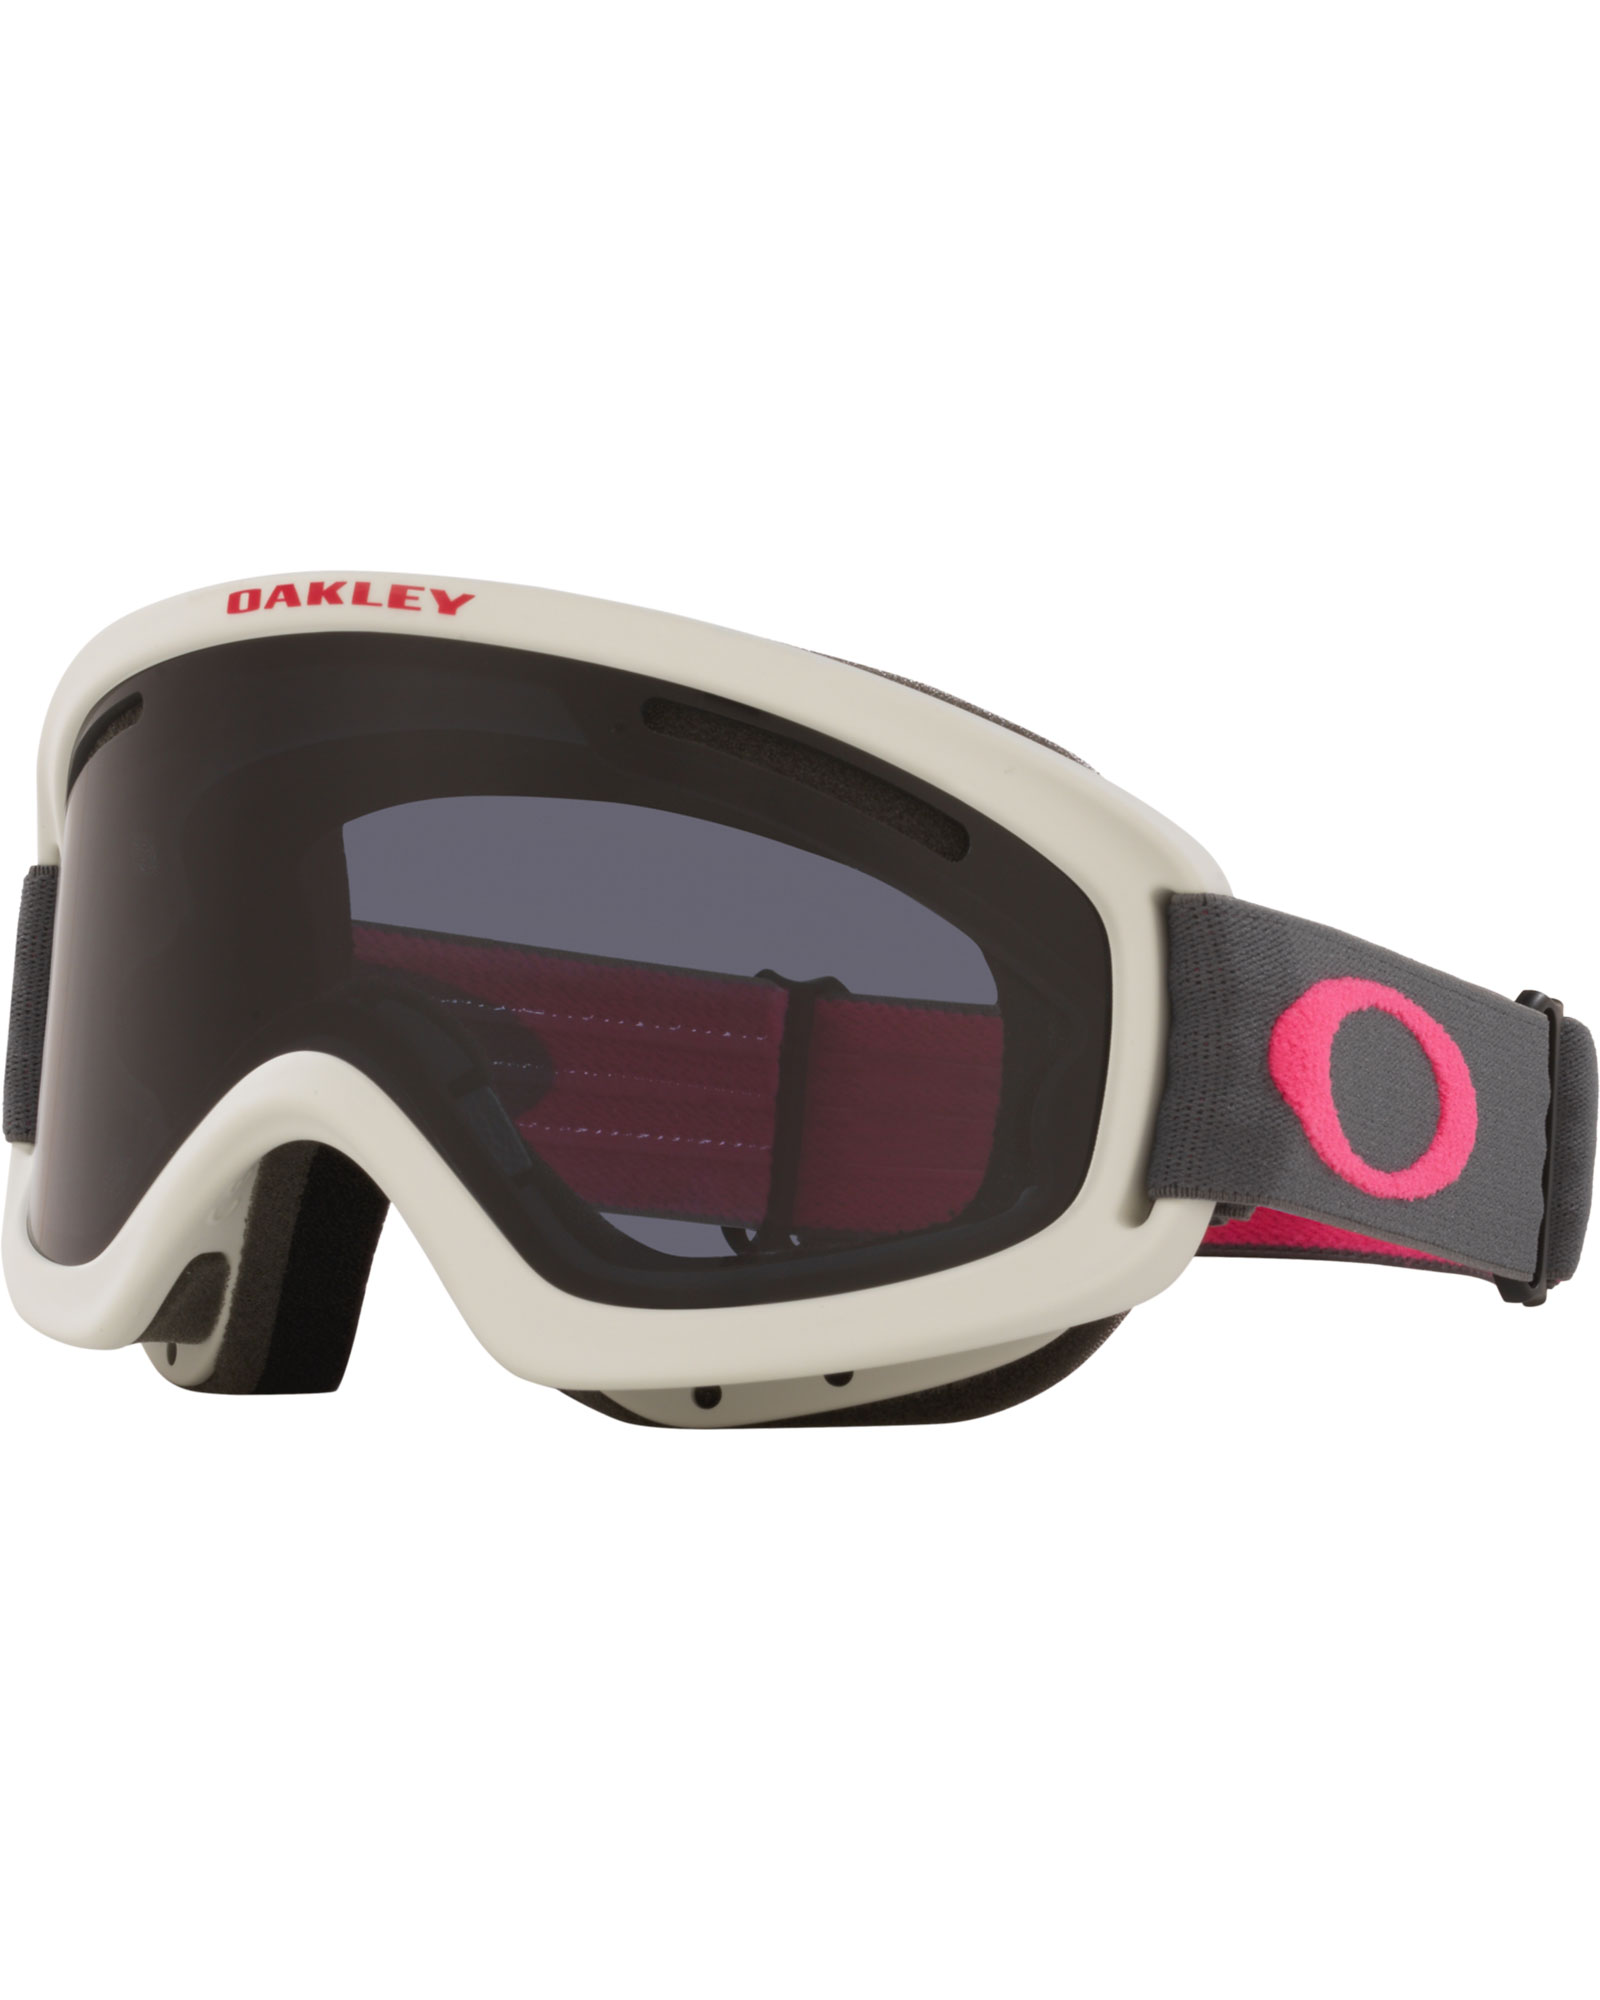 Oakley Kids' O Frame 2.0 Pro Kids' Dark Grey Rubine / Dark Grey + Persimmon Goggles 2020 / 2021 0